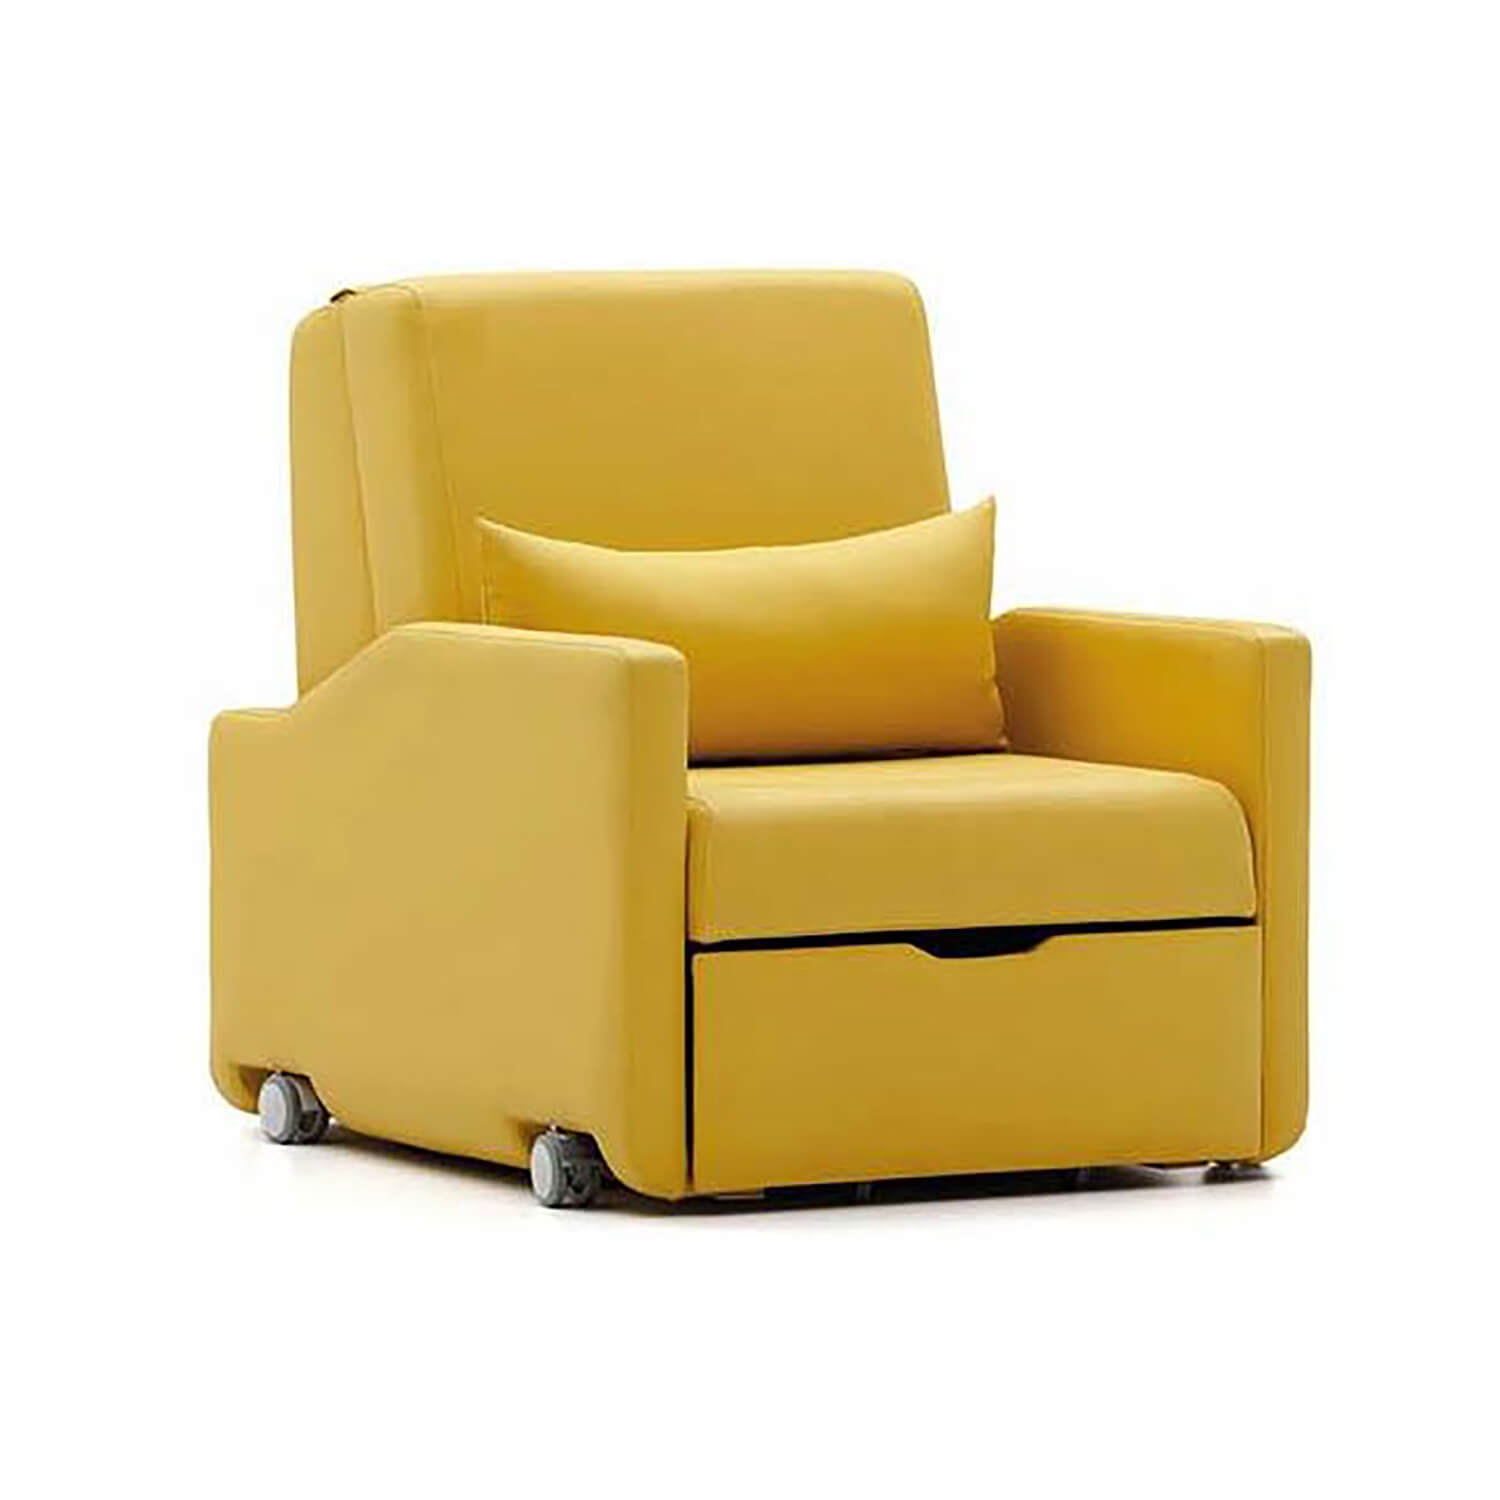 Attendant Sofa Bed with Castors